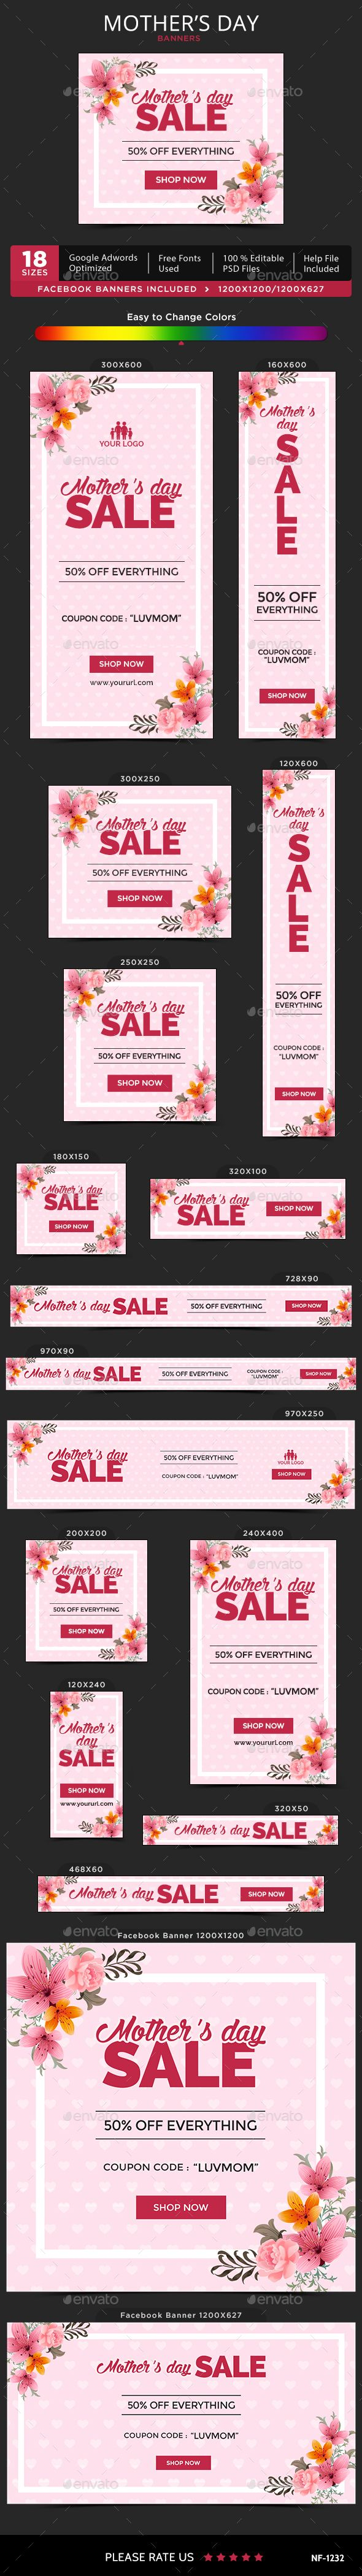 Mother's Day Web Banners Template PSD. Download here: http://graphicriver.net/item/mothers-day-banners/15712779?ref=ksioks